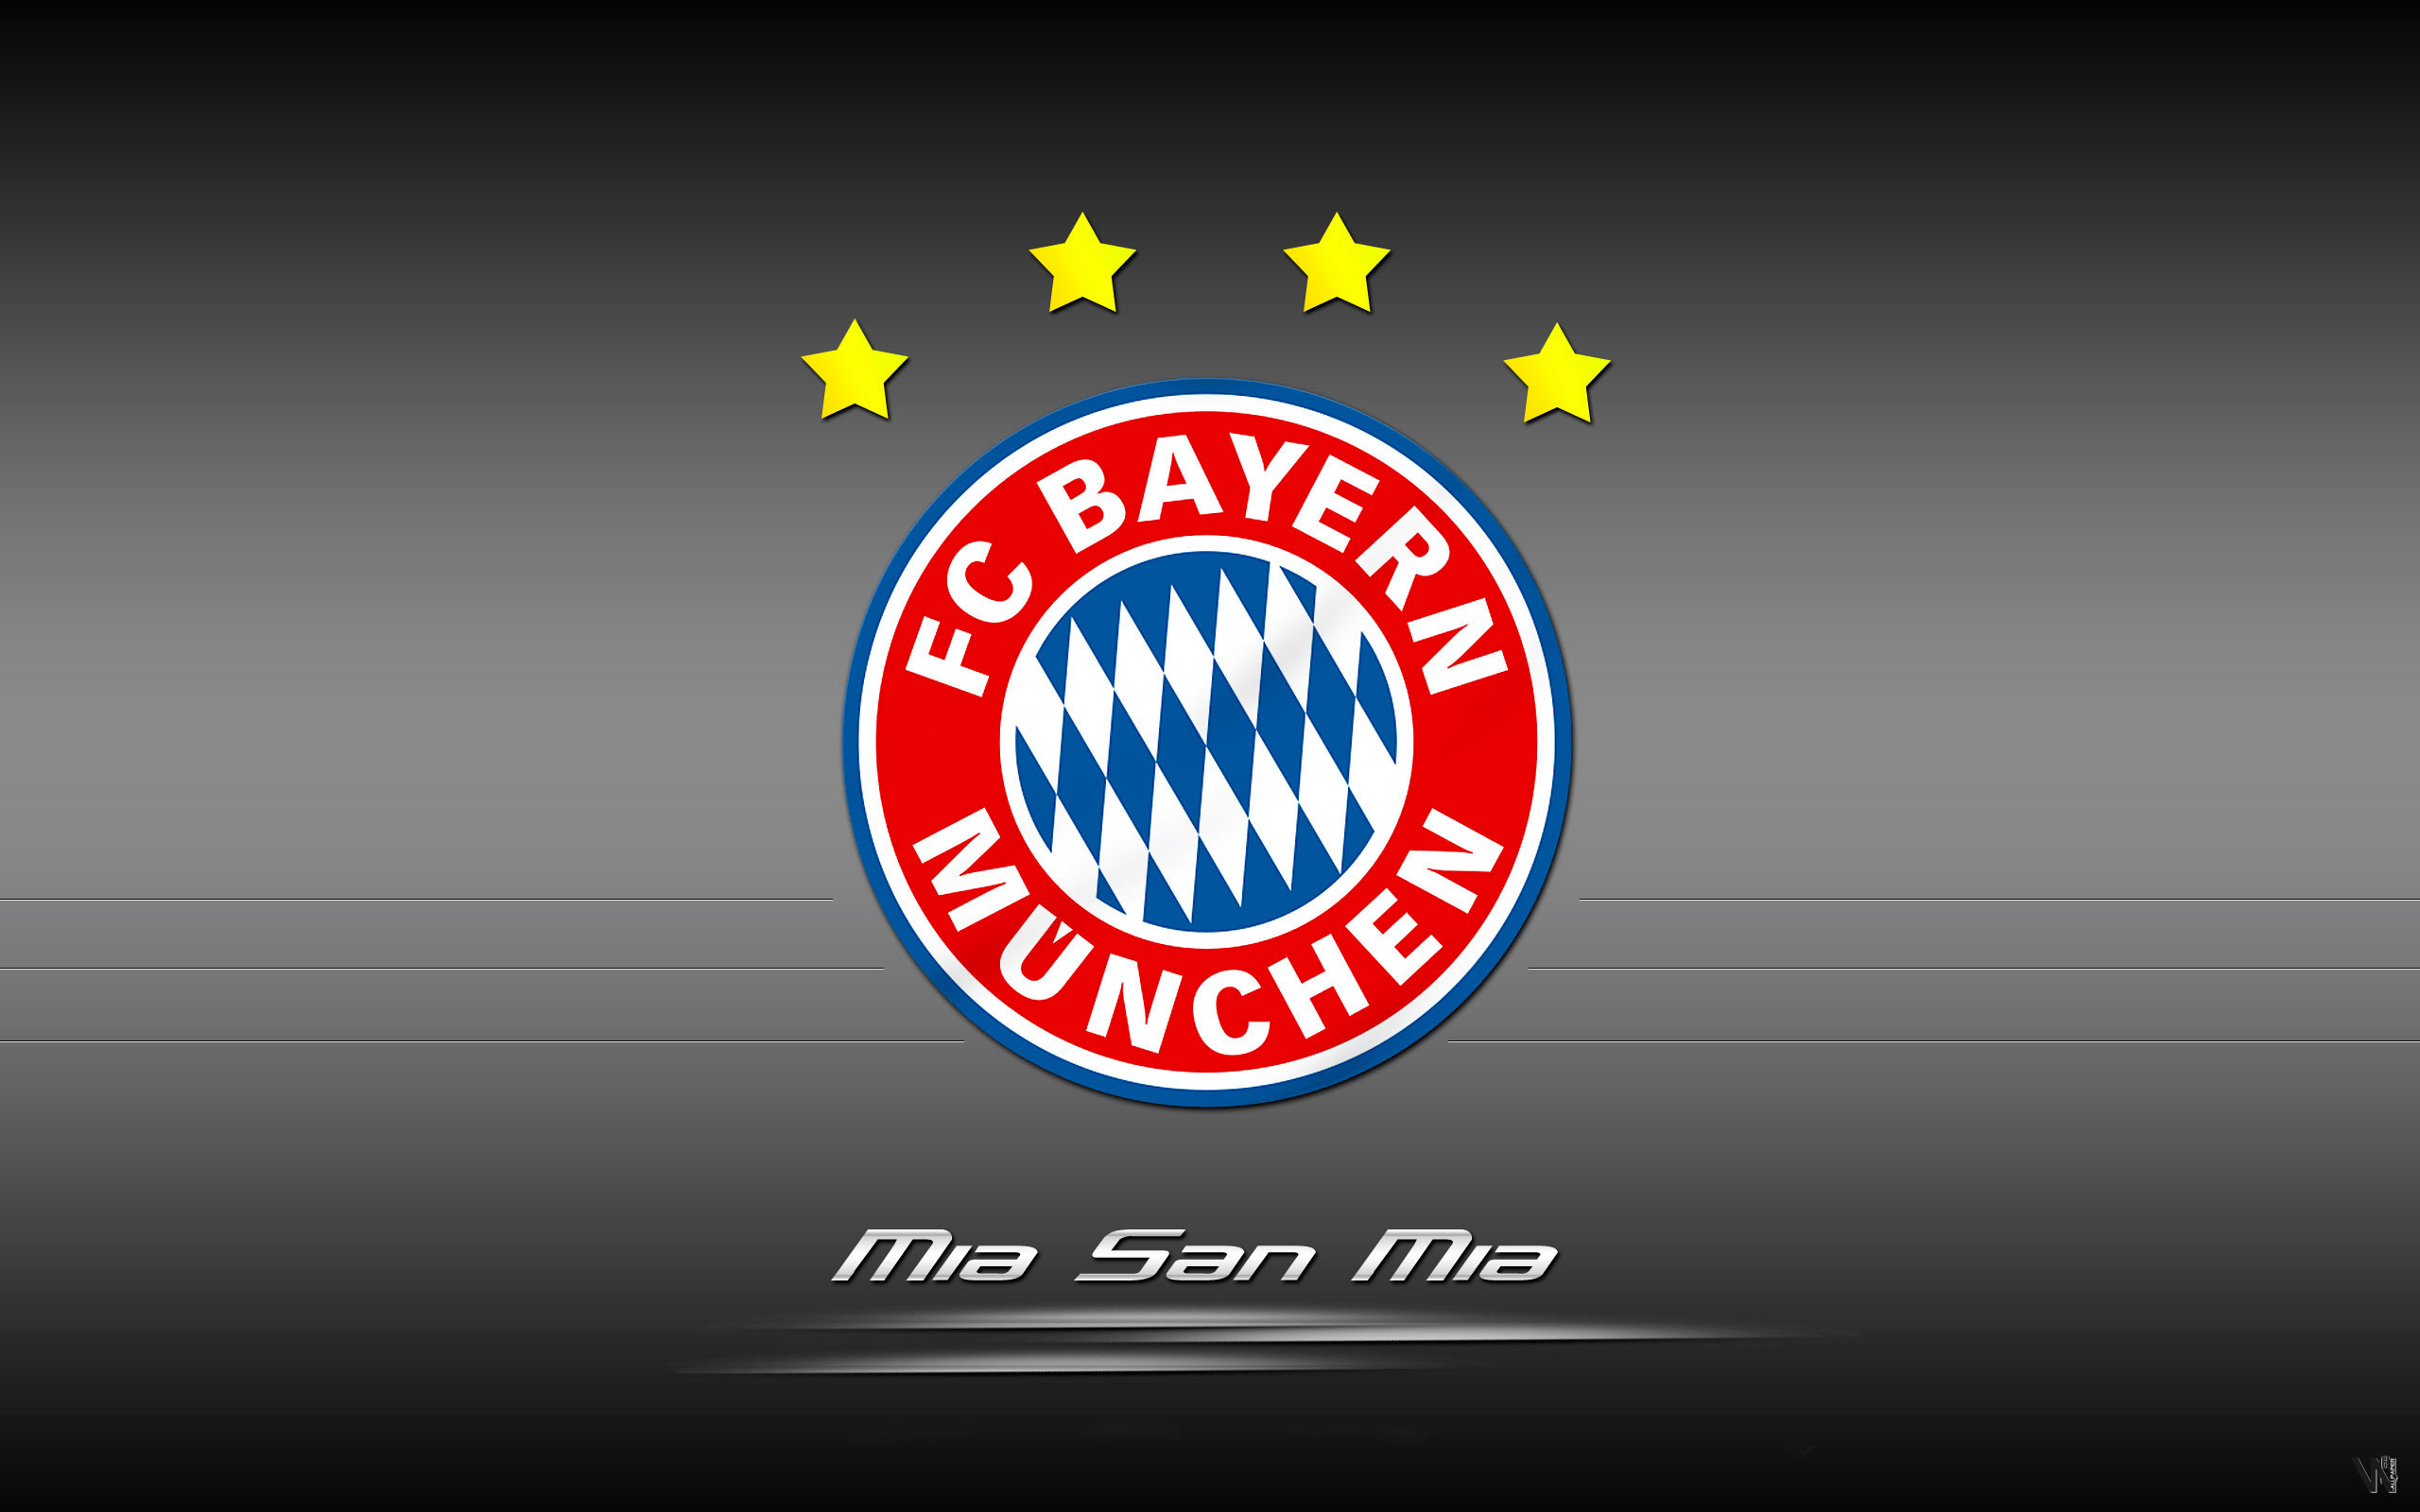 Bayern Munich Wallpaper Mia San Mia 2